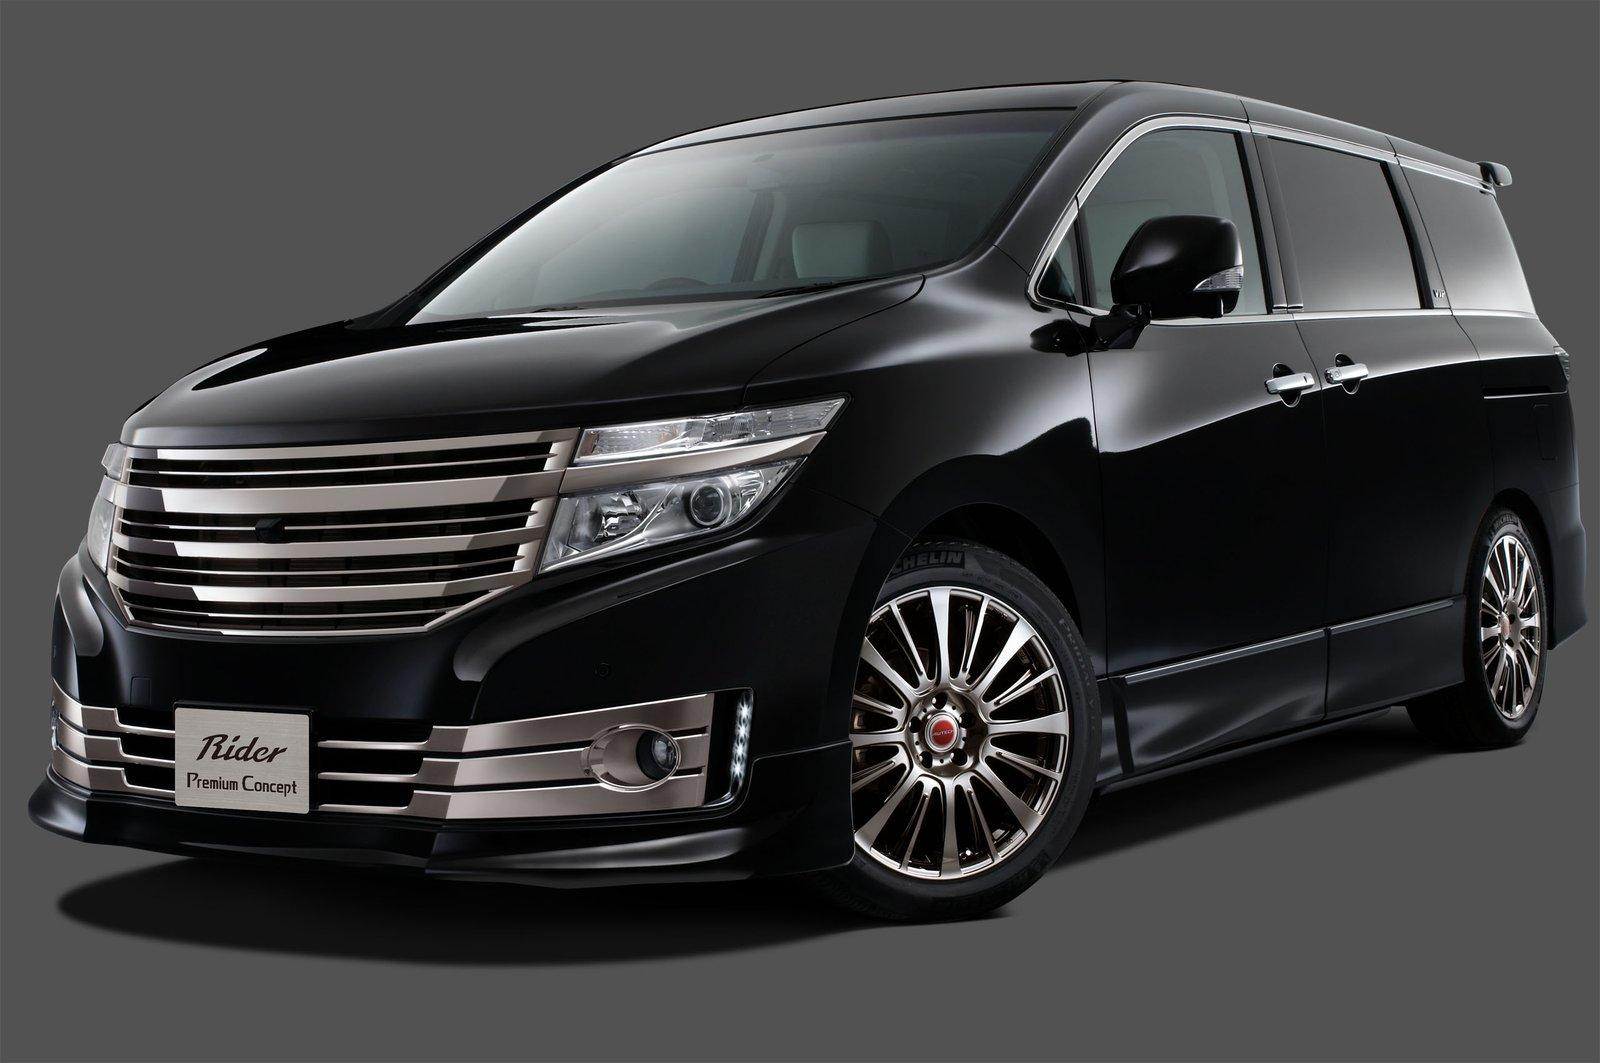 nissan elgrand images #3